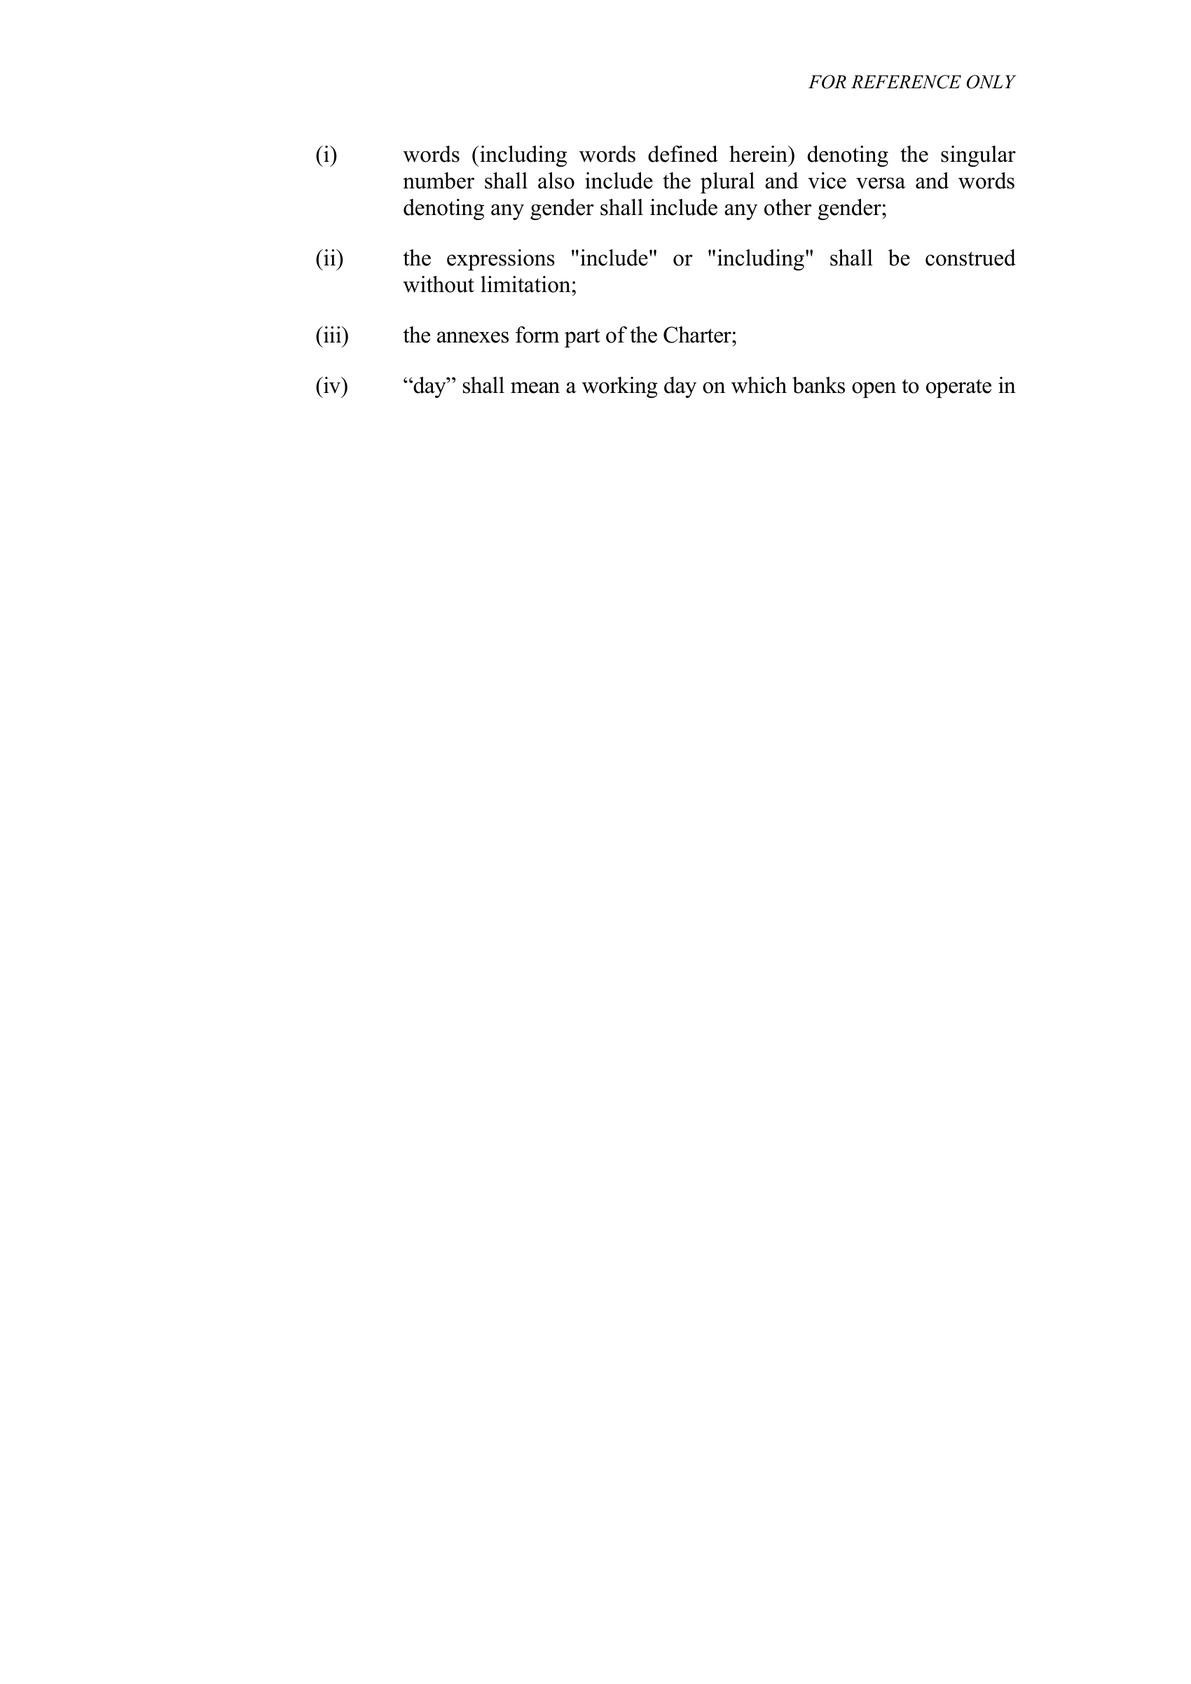 Joint stock company charter template in Vietnam (English)-8